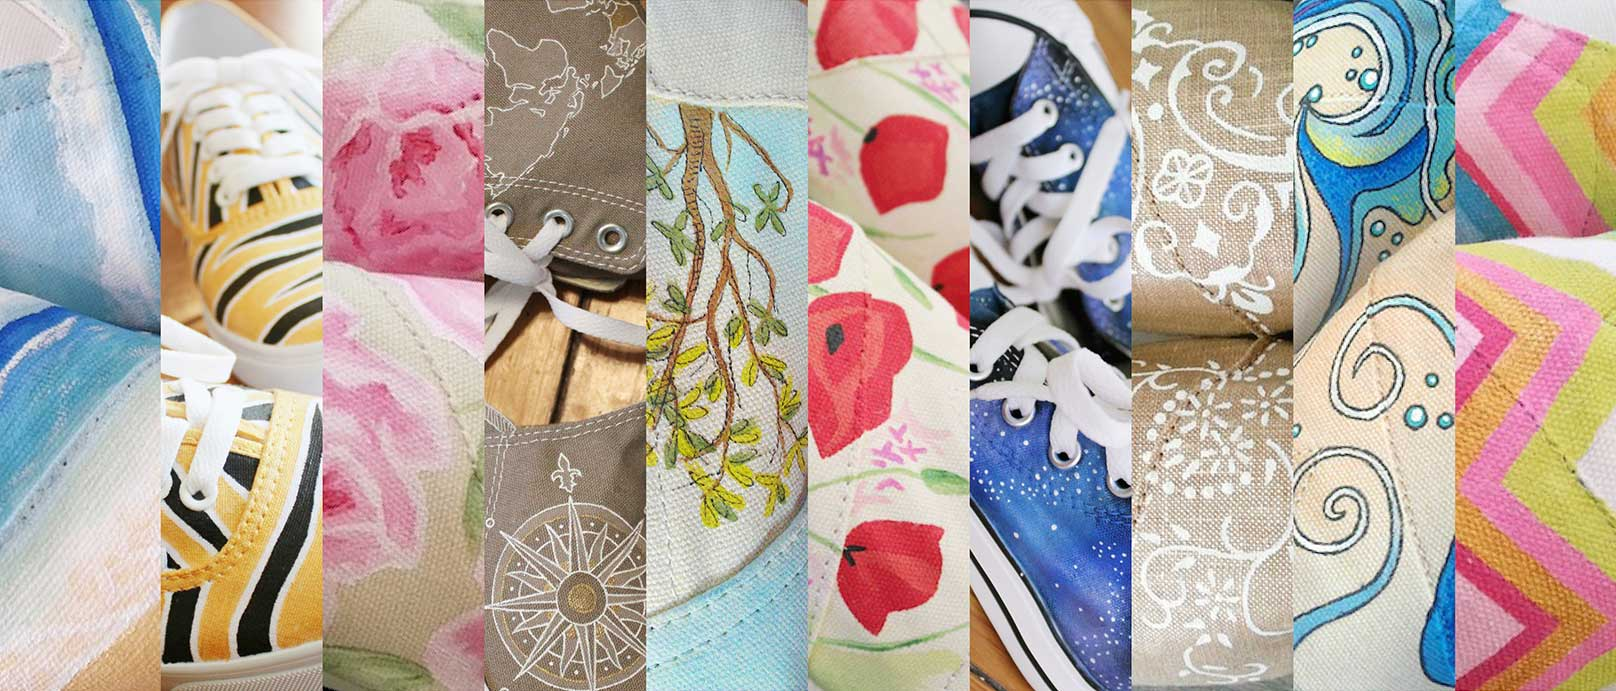 Examples of shoes that Lauren Runquist has designed.